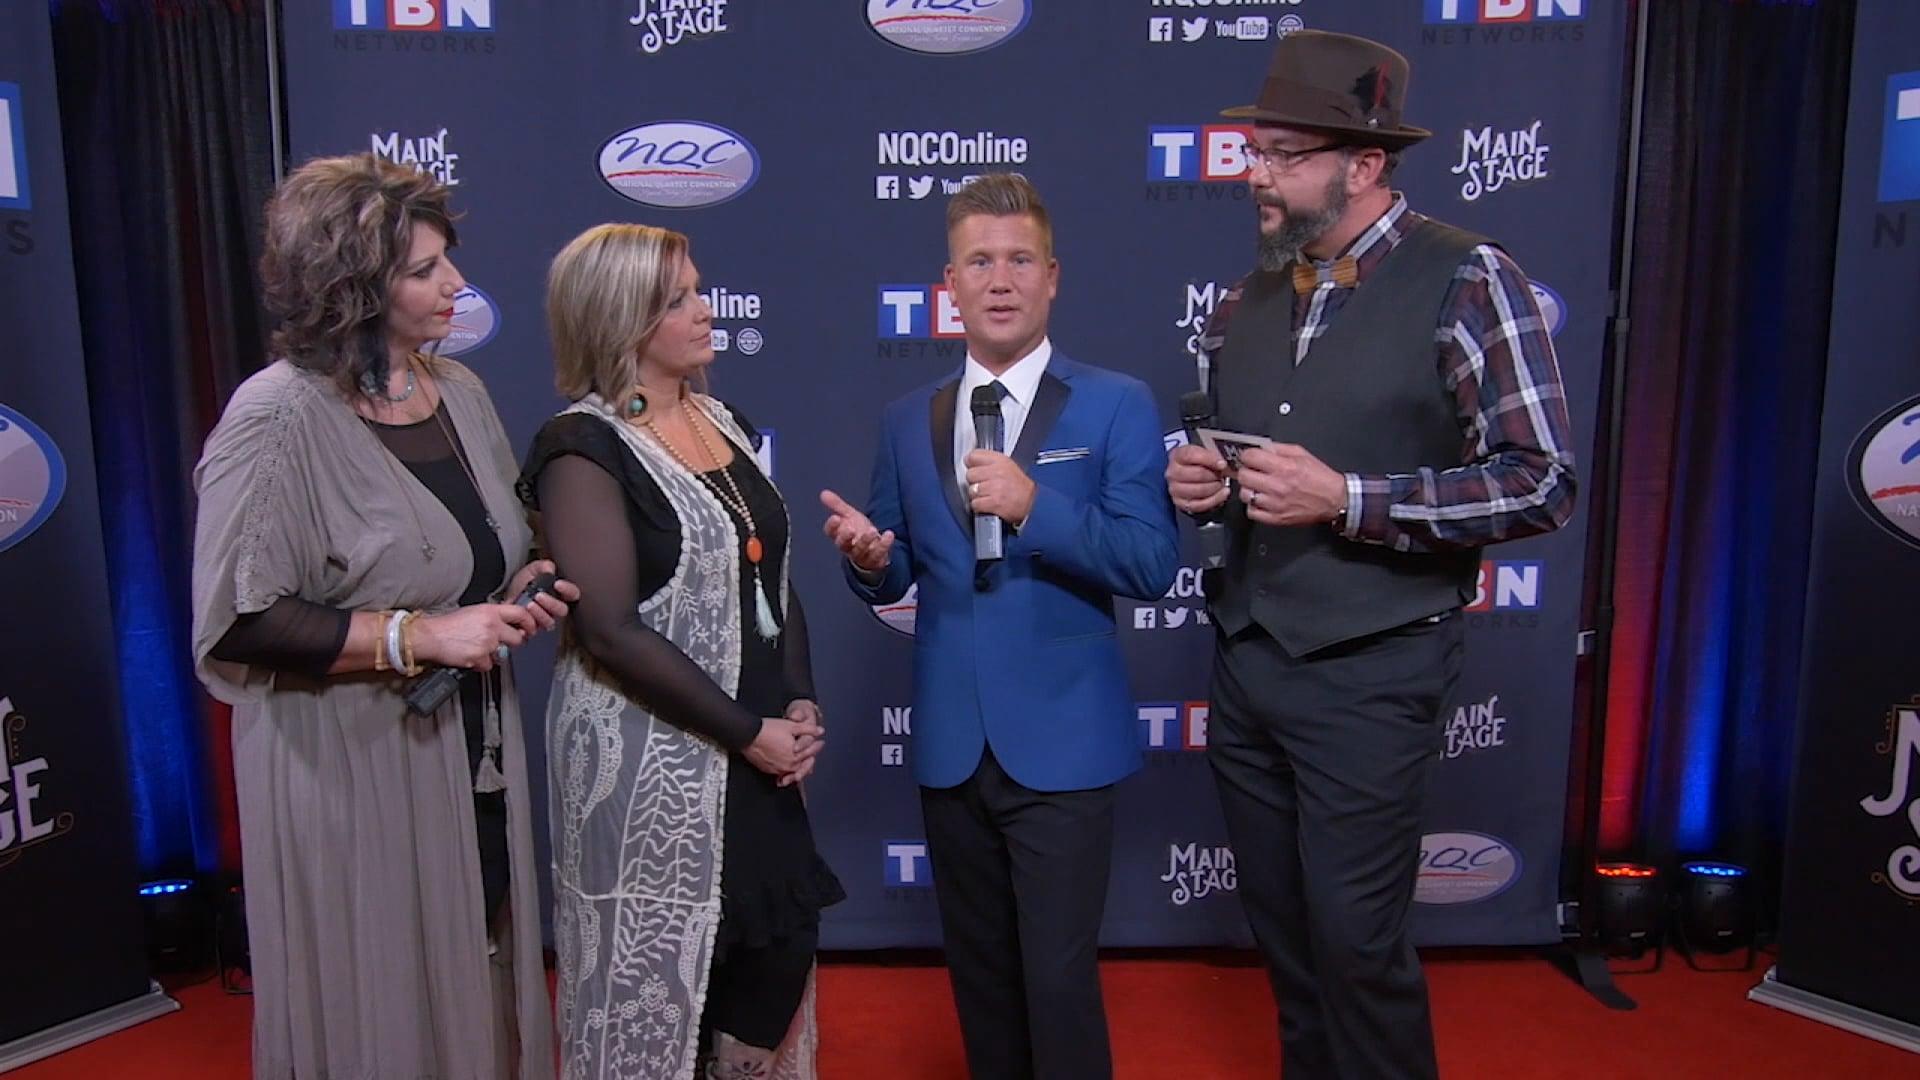 Guests Ernie Haase & Signature Sound, Joseph Habedank, and Cana's Voice